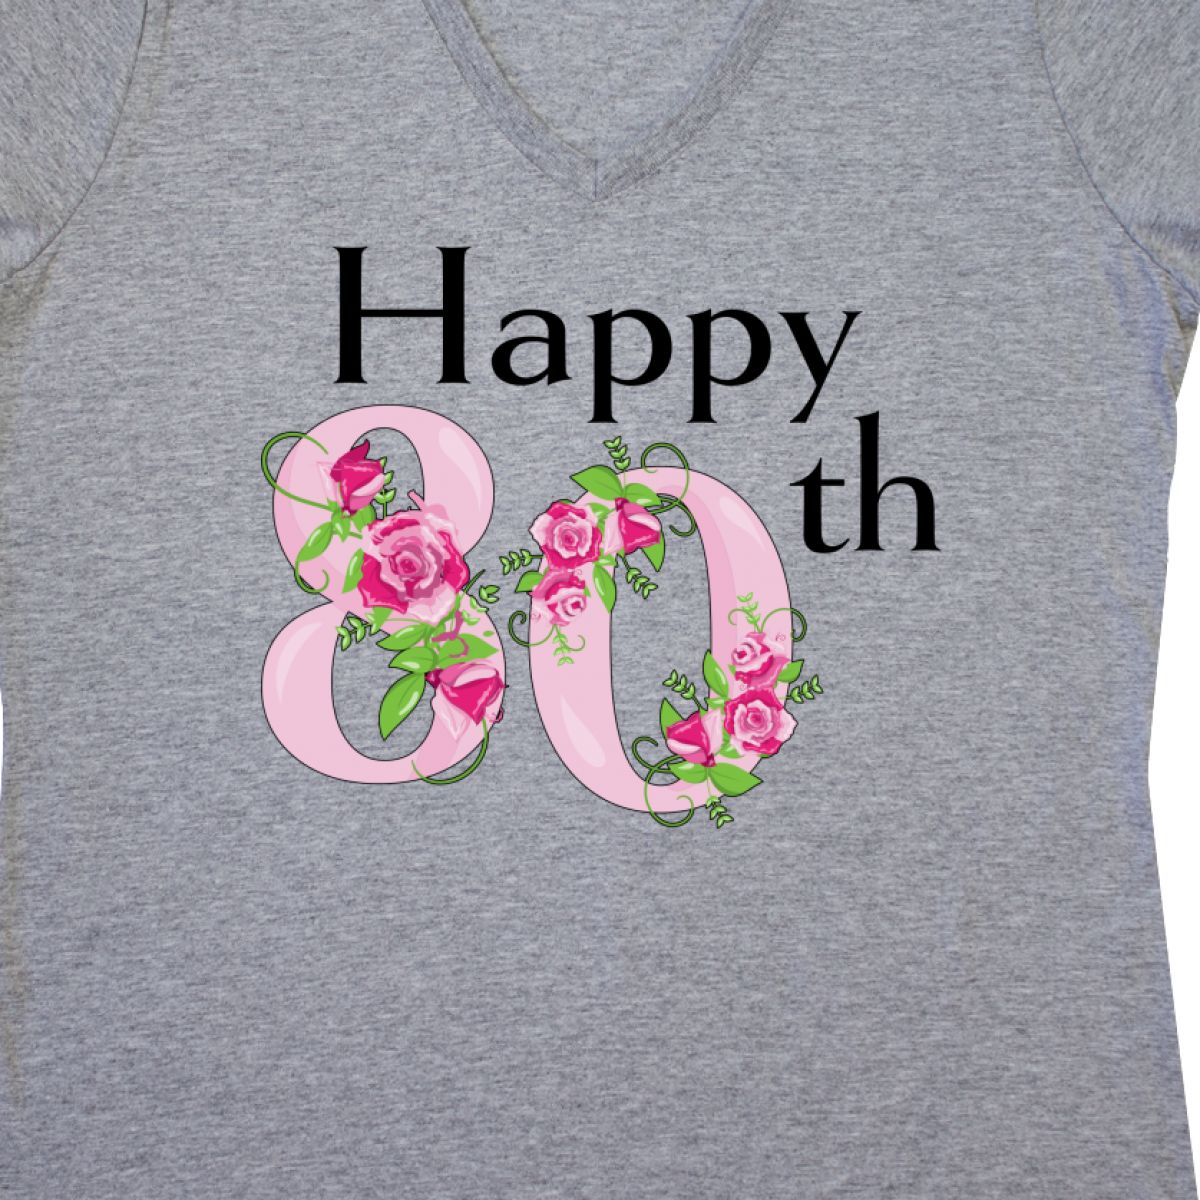 Inktastic Happy 80th Birthday With Roses Women 039